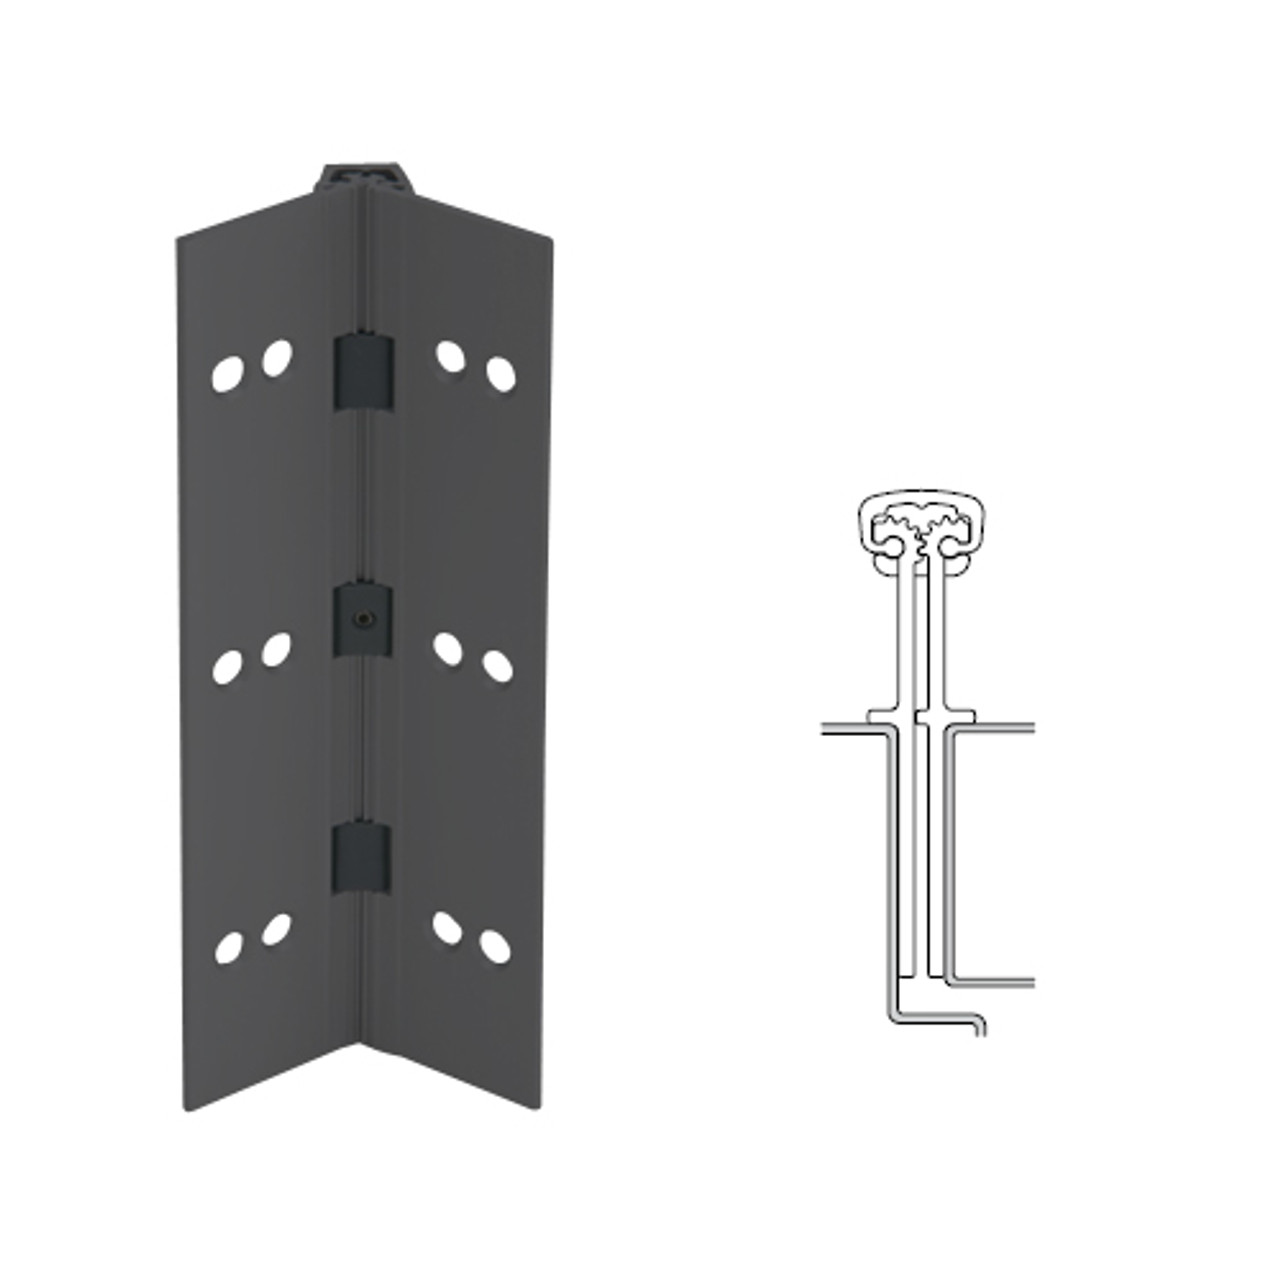 040XY-315AN-83 IVES Full Mortise Continuous Geared Hinges in Anodized Black